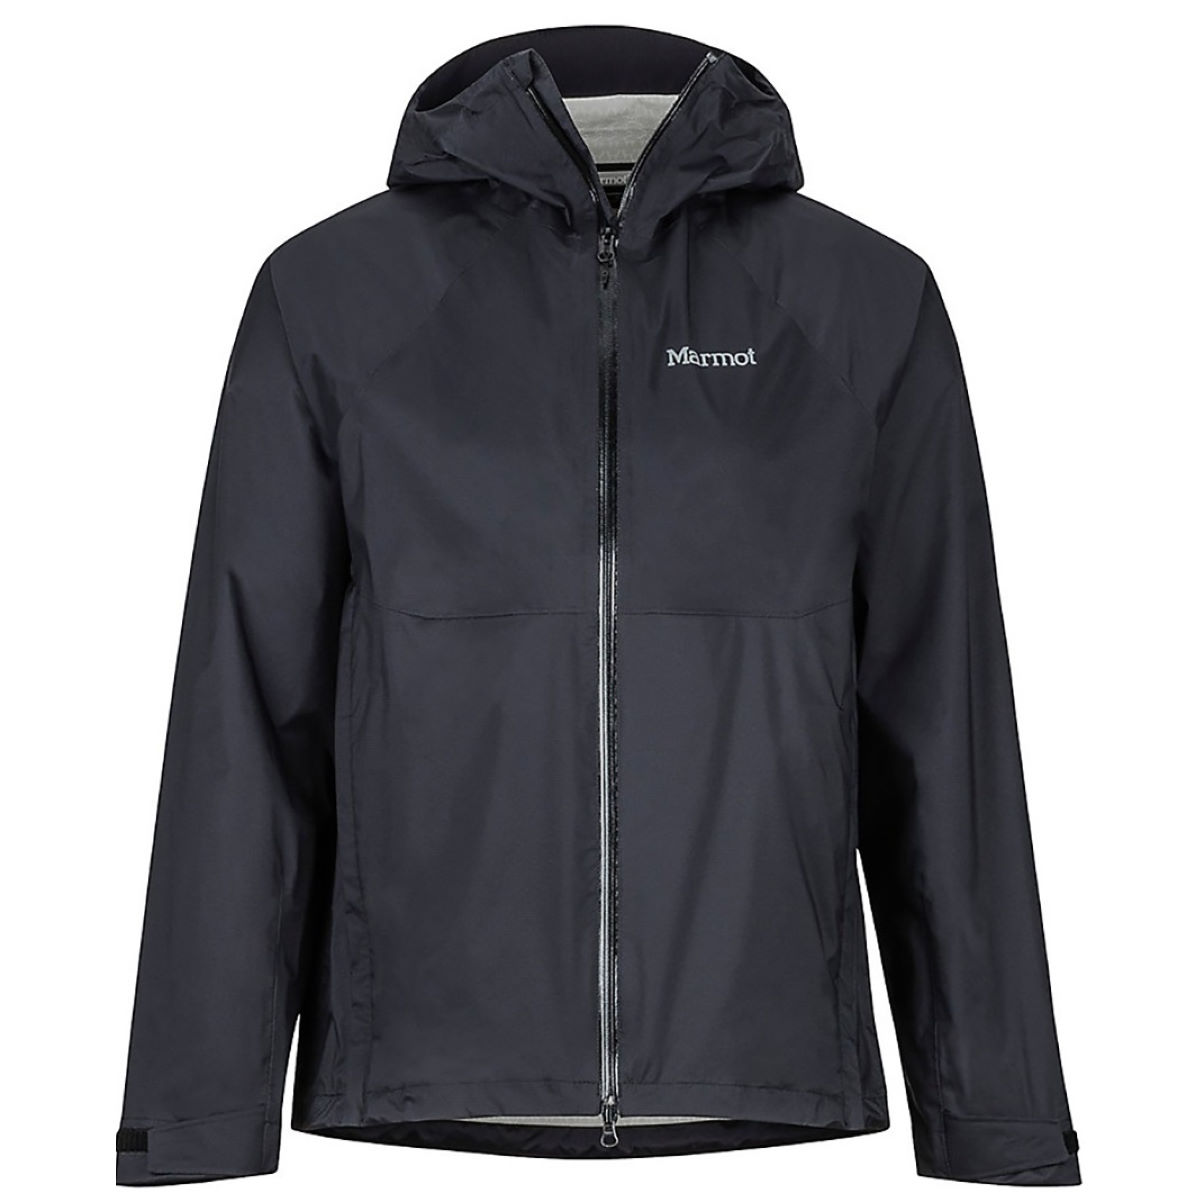 Marmot Marmot PreCip Stretch Jacket   Jackets